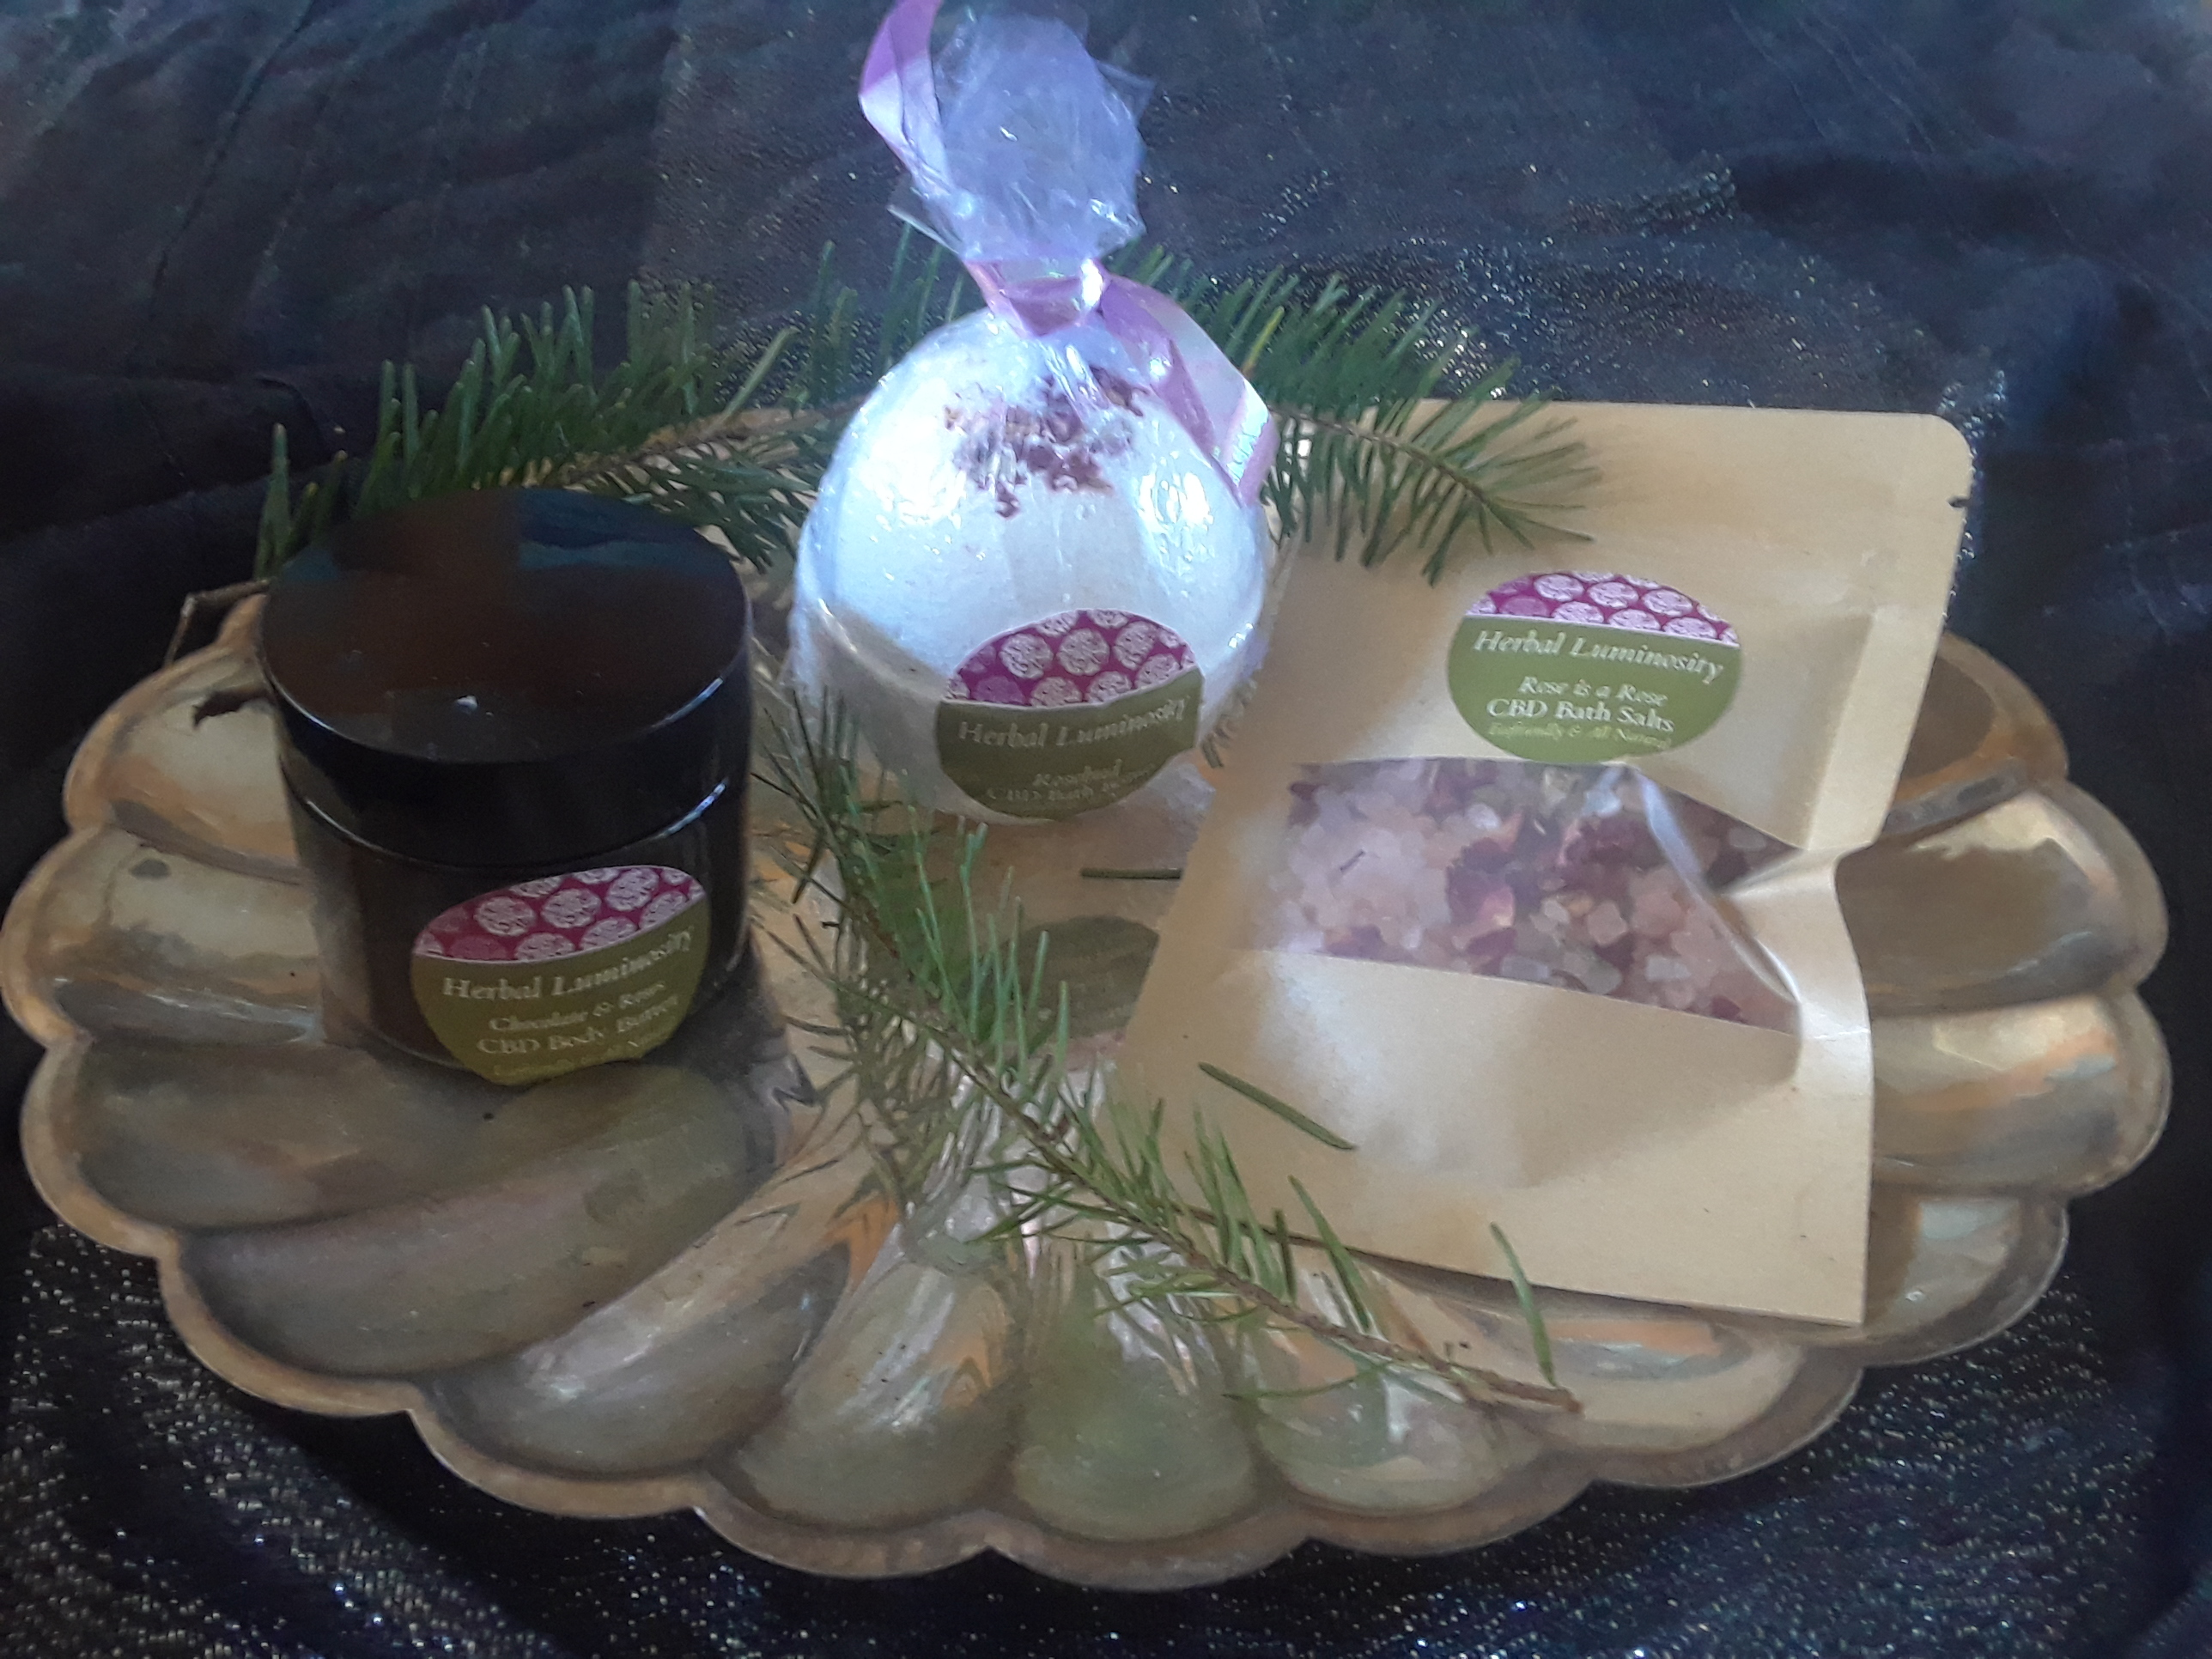 Herbal Luminosity Artisanal CBD Bathing and Balm Gift Pack